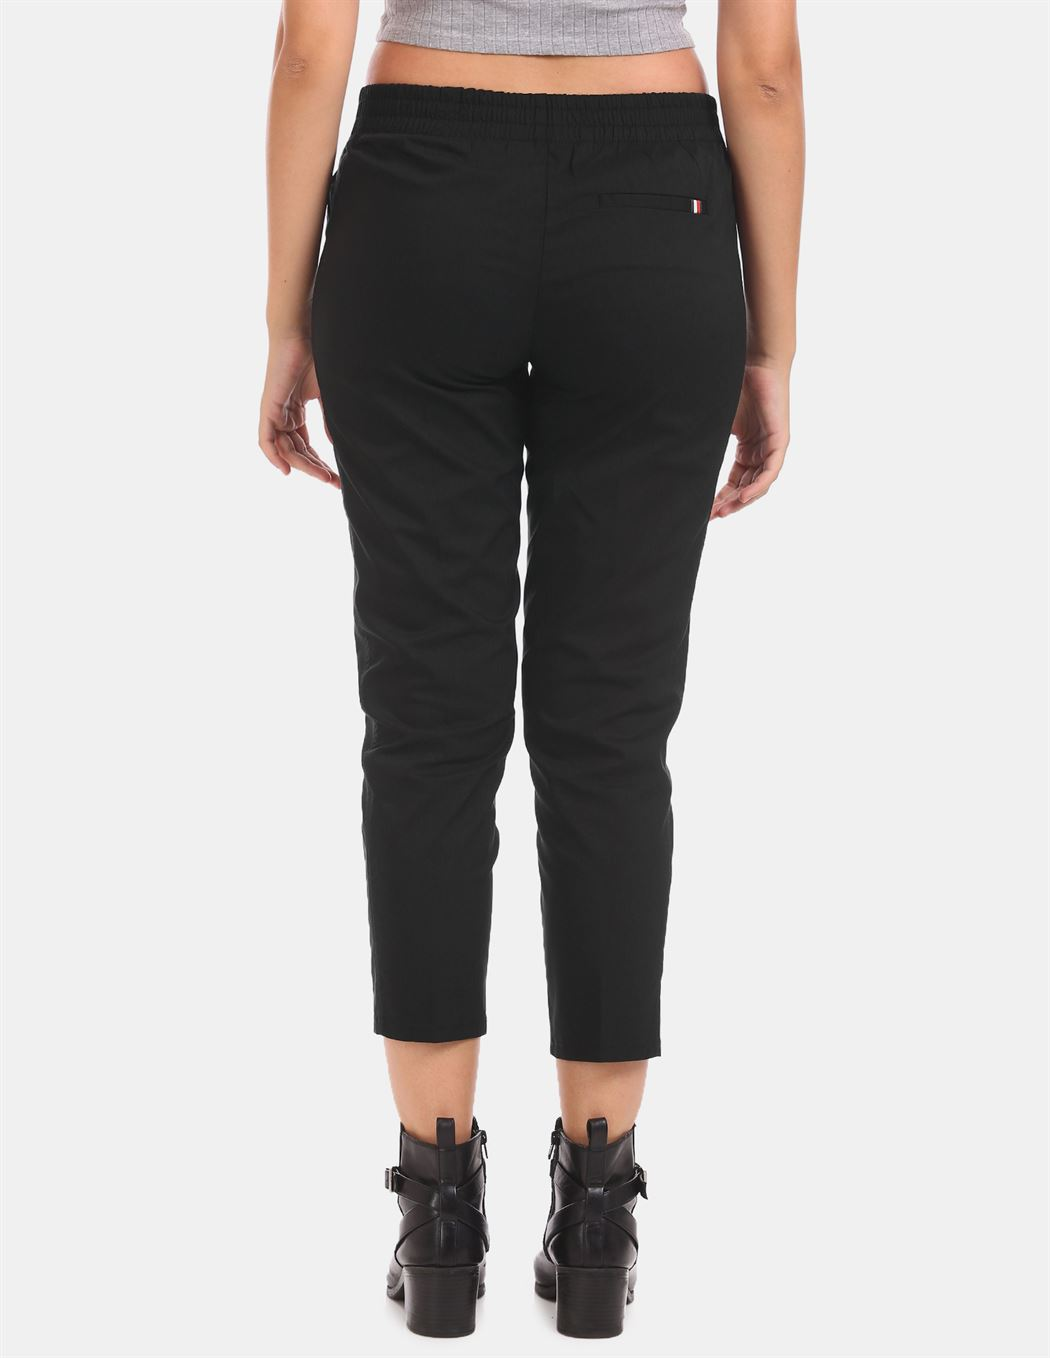 Tommy Hilfiger Women Casual Wear Black Track Pant